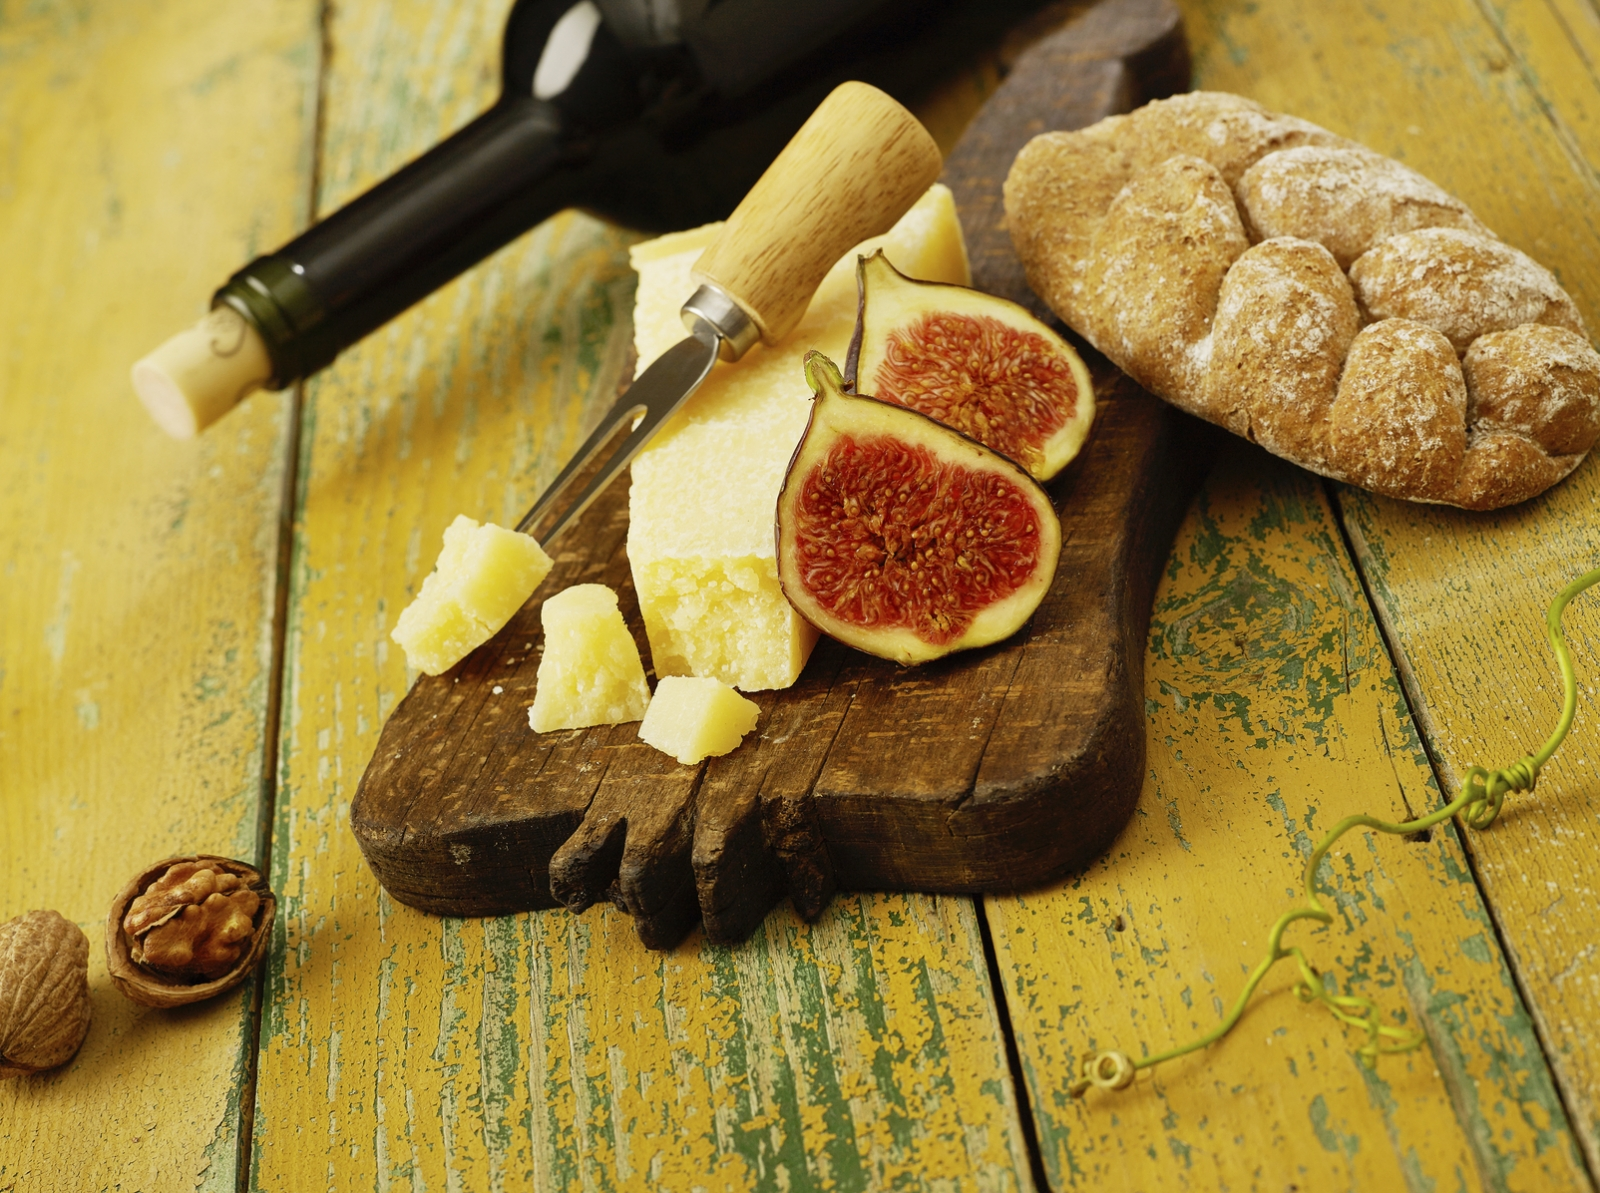 Cheese, wine, figs, bread